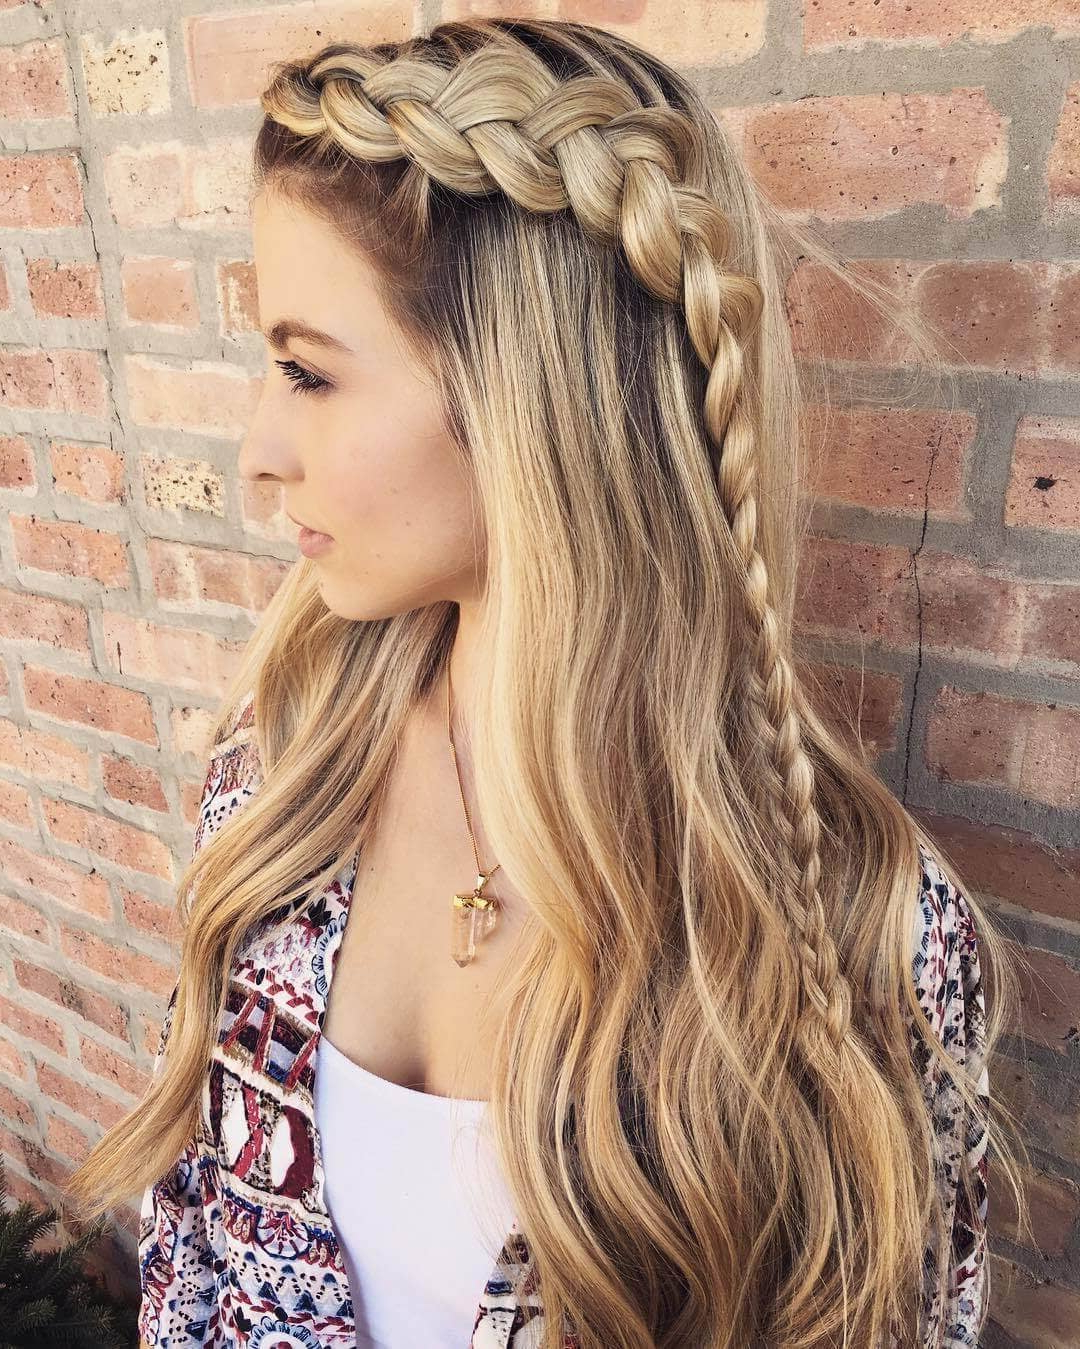 Best And Newest Tight Braided Hairstyles With Headband Throughout 25 Effortless Side Braid Hairstyles To Make You Feel Special (View 7 of 20)